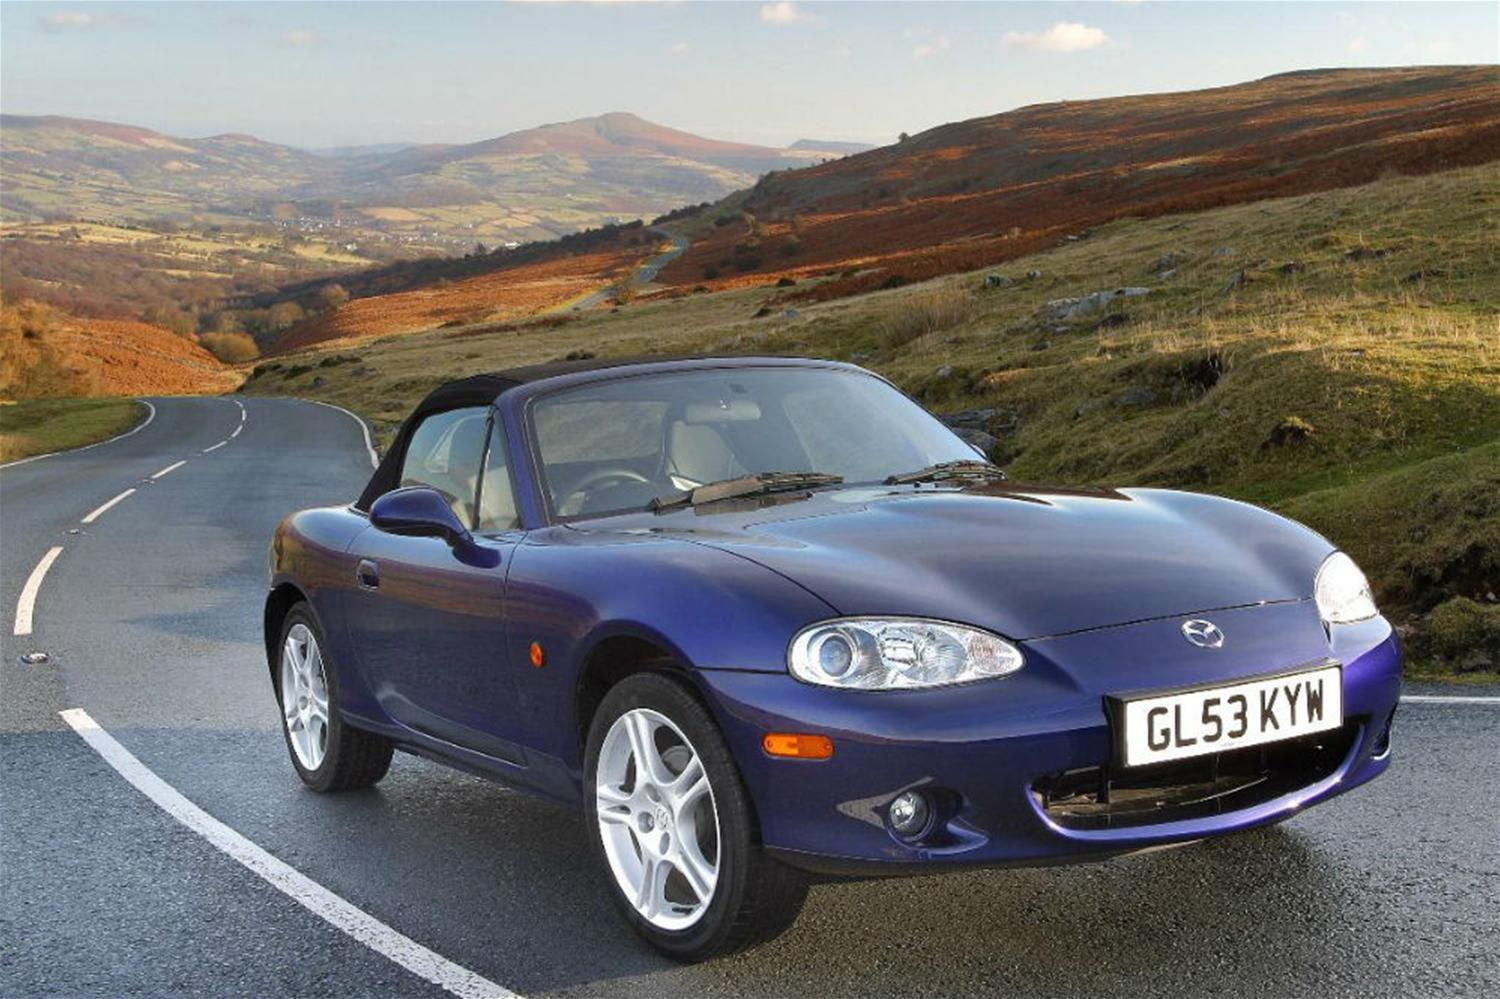 Best Used Convertible Car Bargains